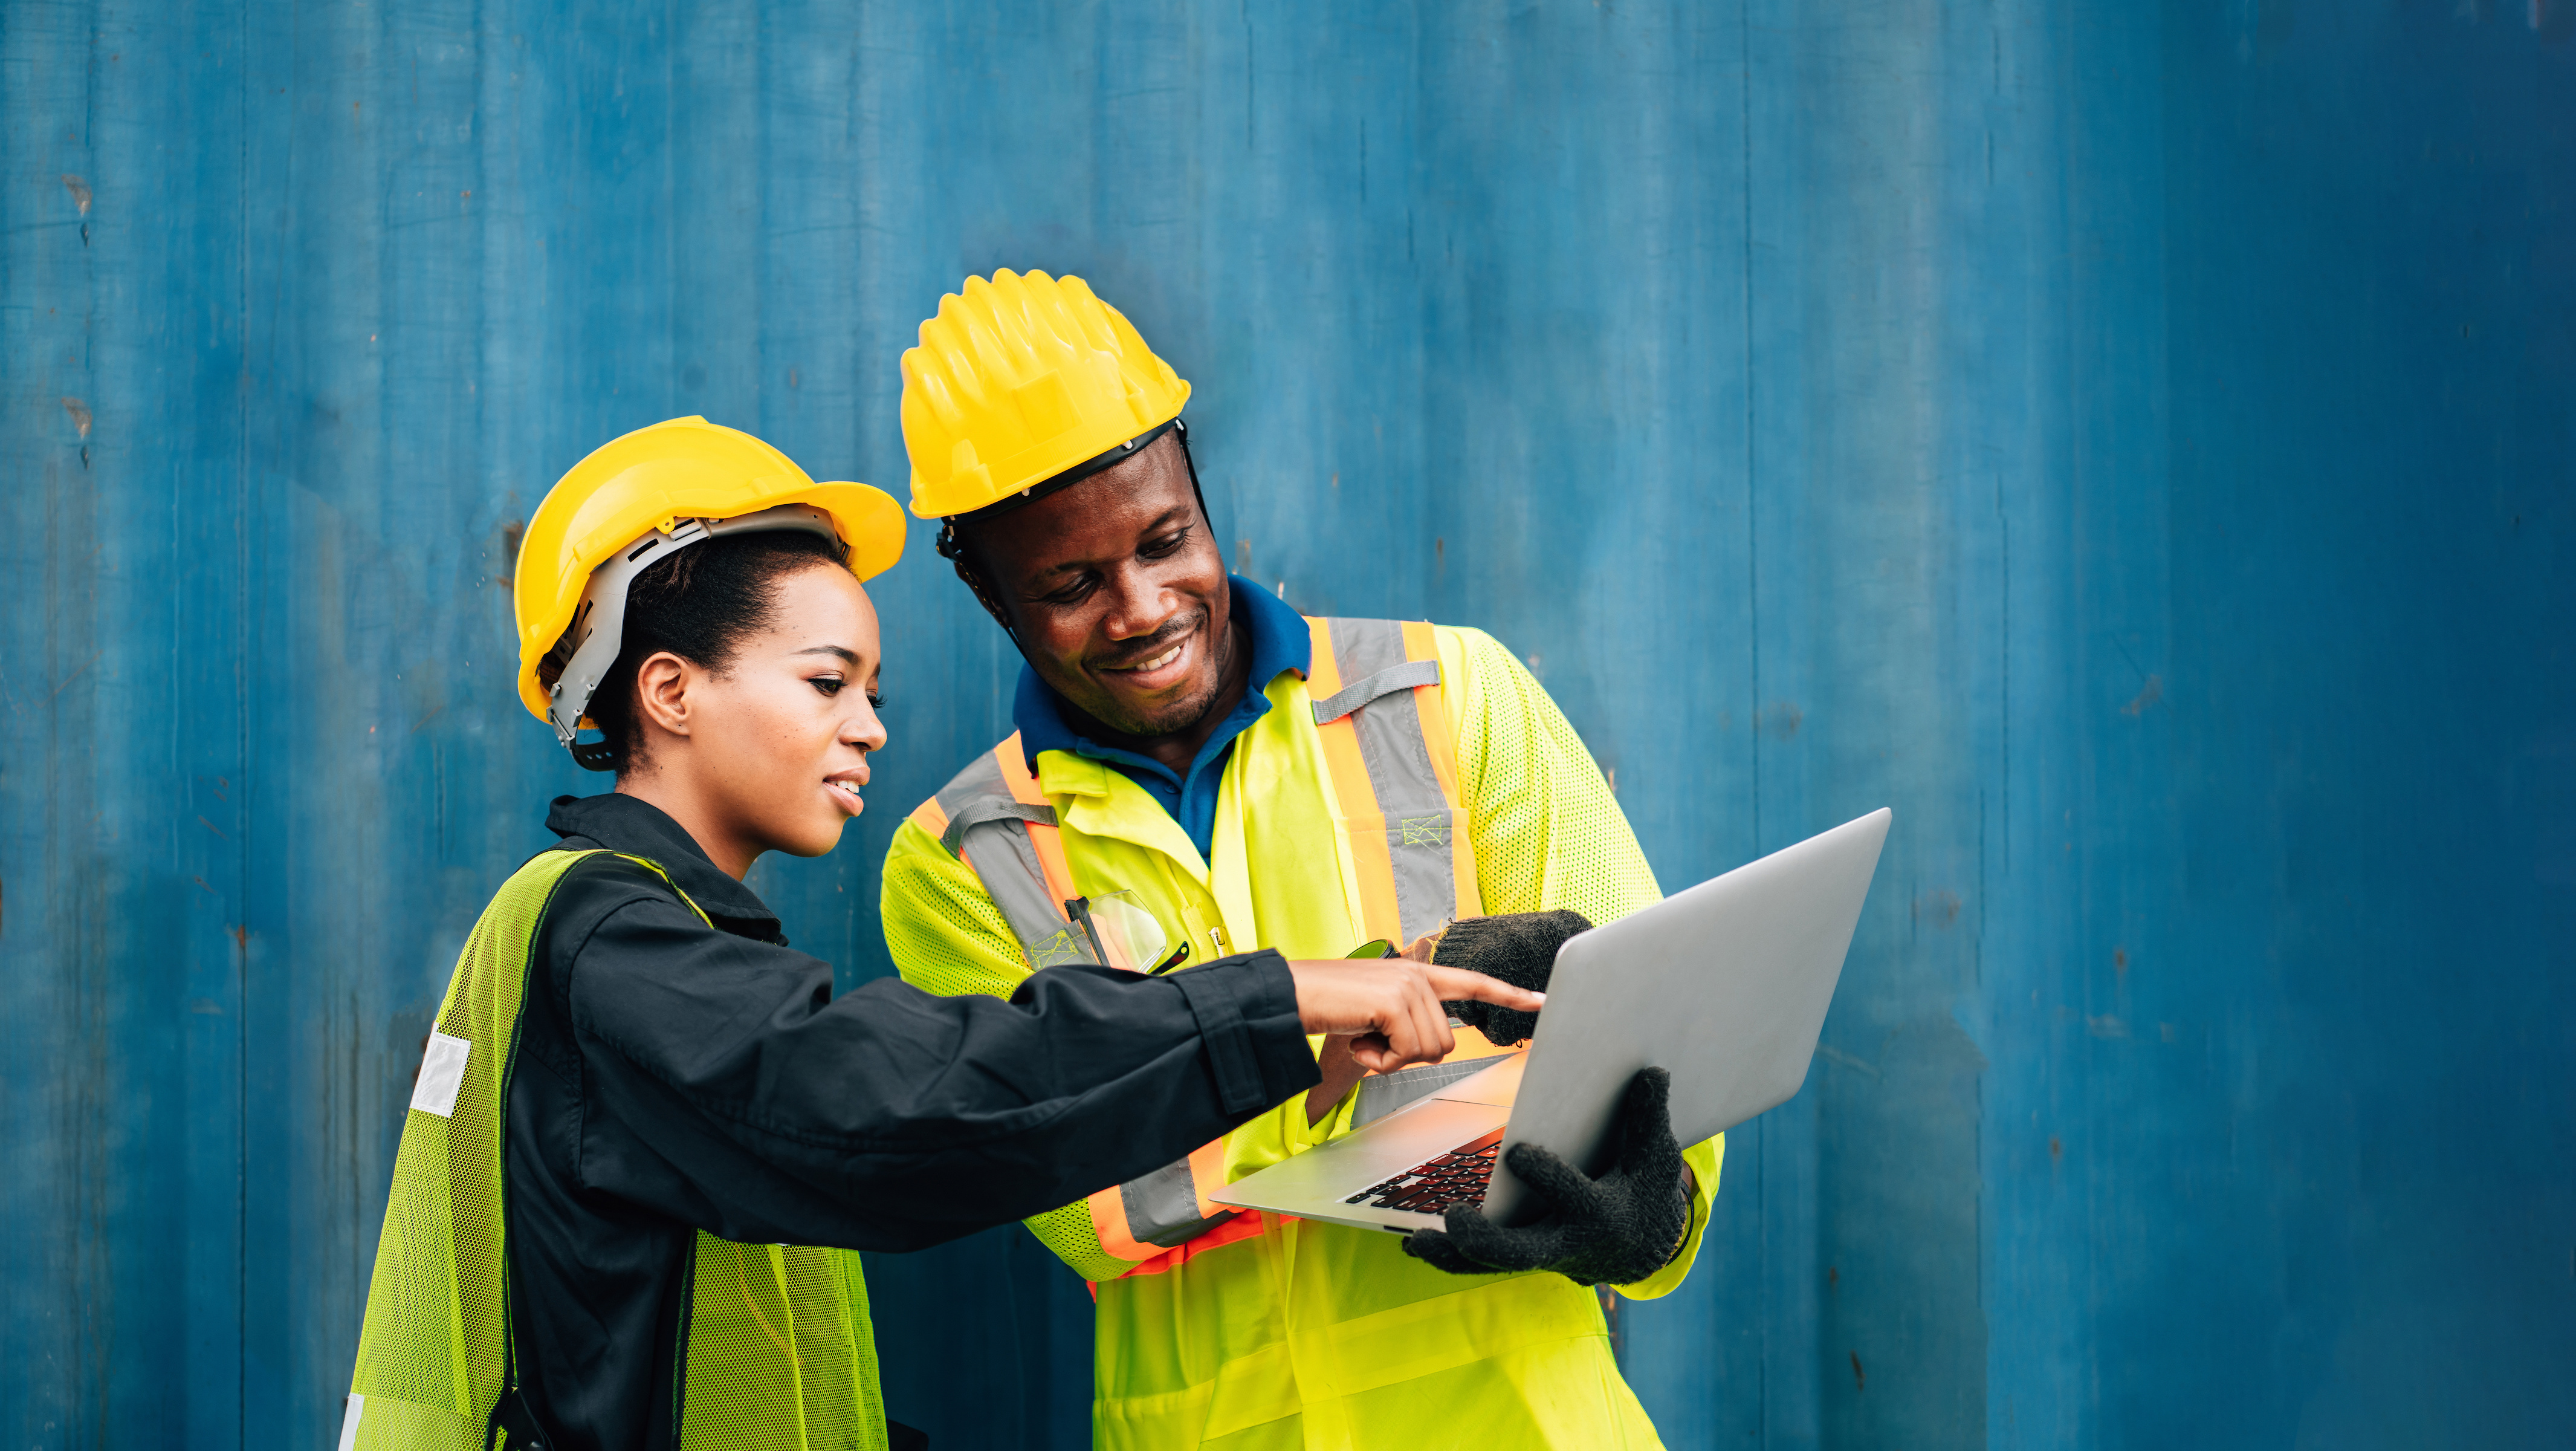 The Friday Five: Adding the human element to digital supply chains